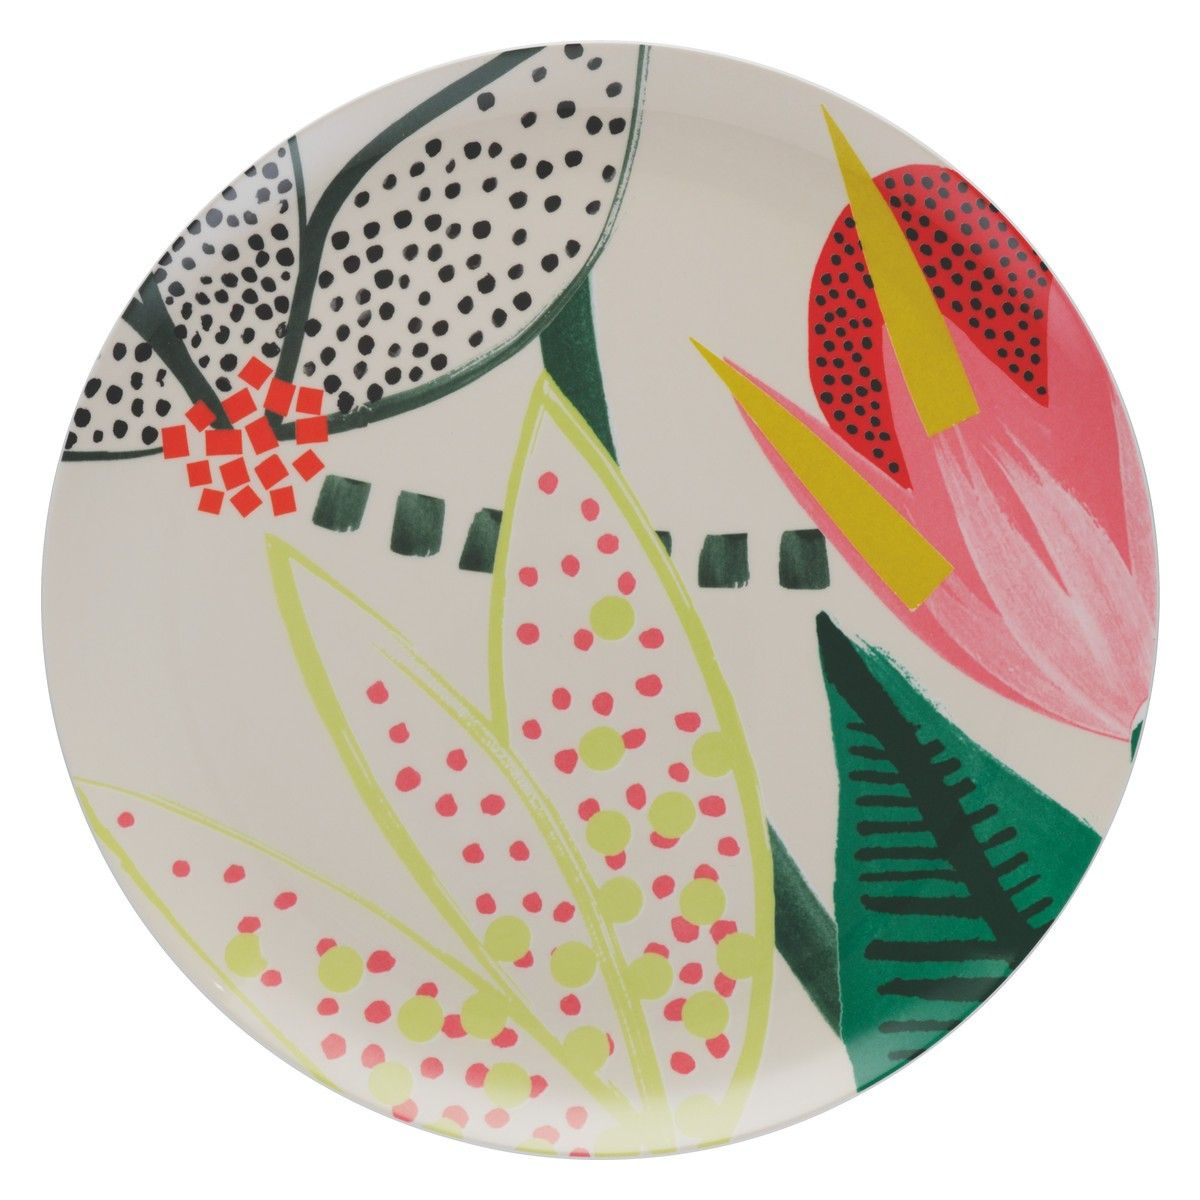 JOELLE Patterned melamine dinner plate 27cm  sc 1 st  Pinterest & JOELLE Patterned melamine dinner plate 27cm   Objects / Products ...